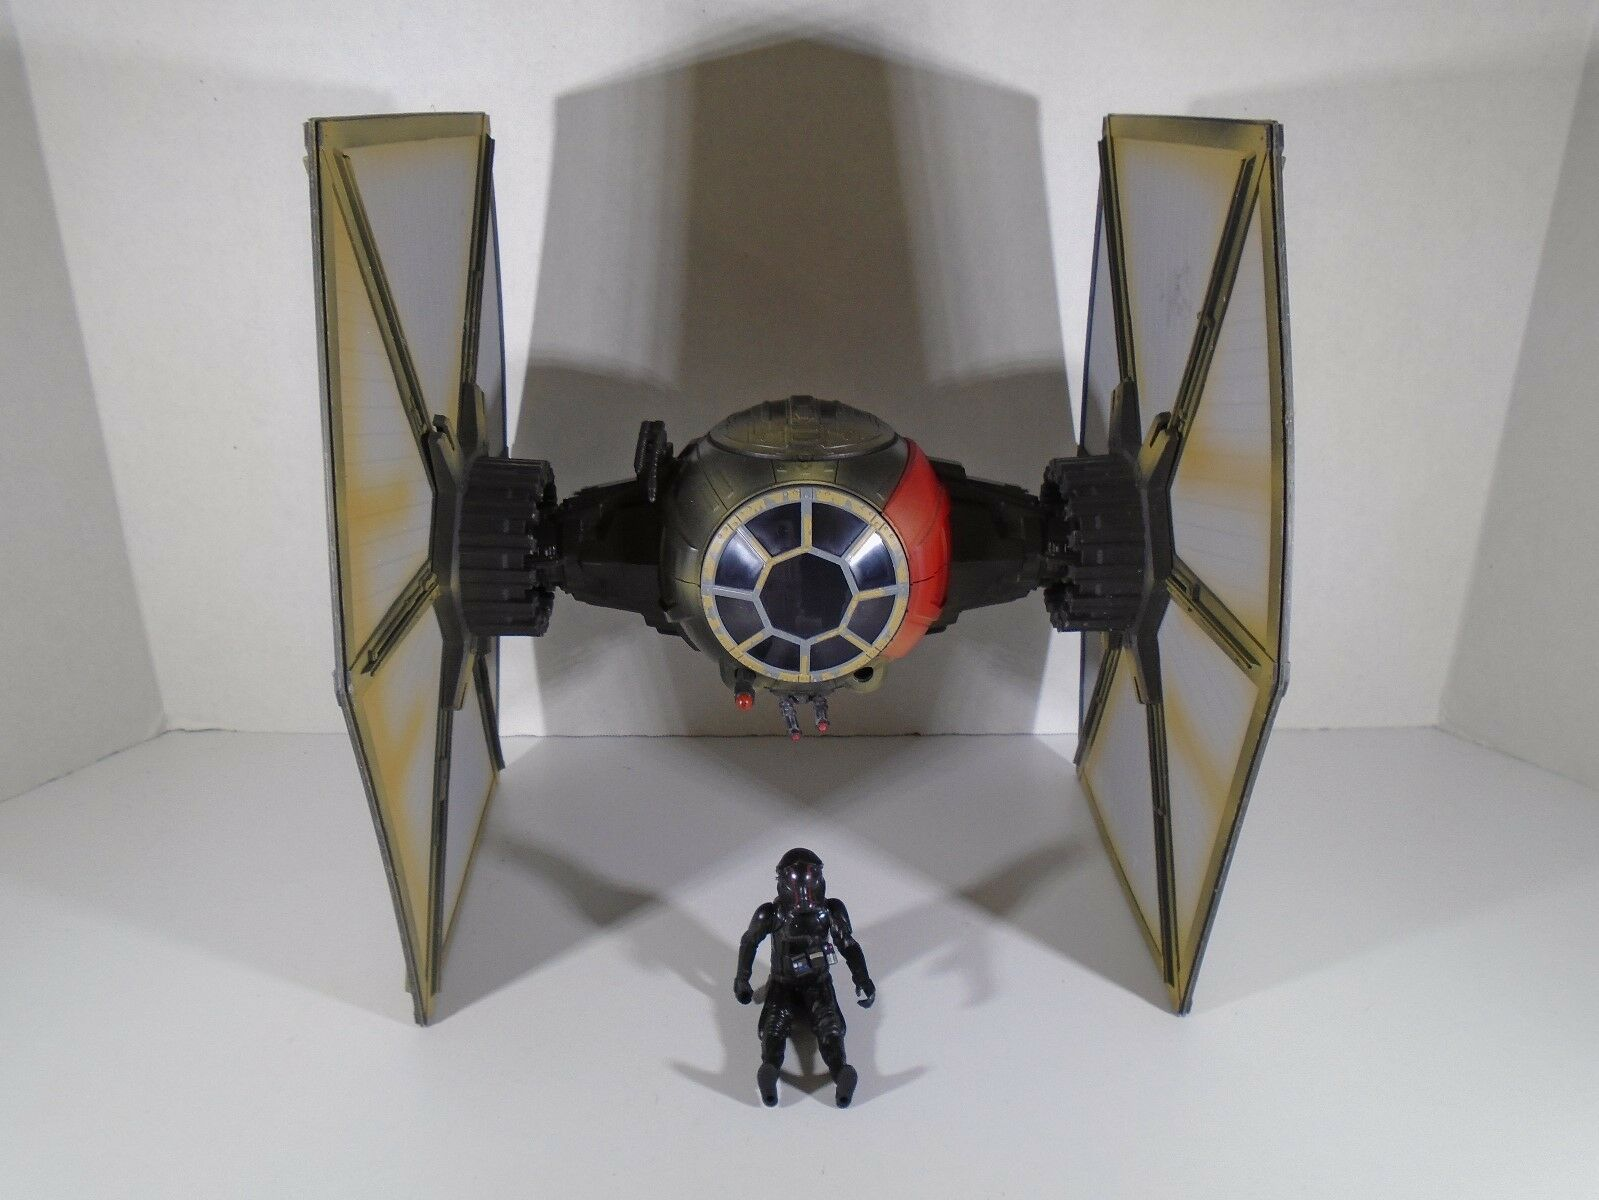 2015 HASBRO--STAR WARS--FIRST ORDER SPECIAL FORCES TIE FIGHTER (3 3 4 VERSION)